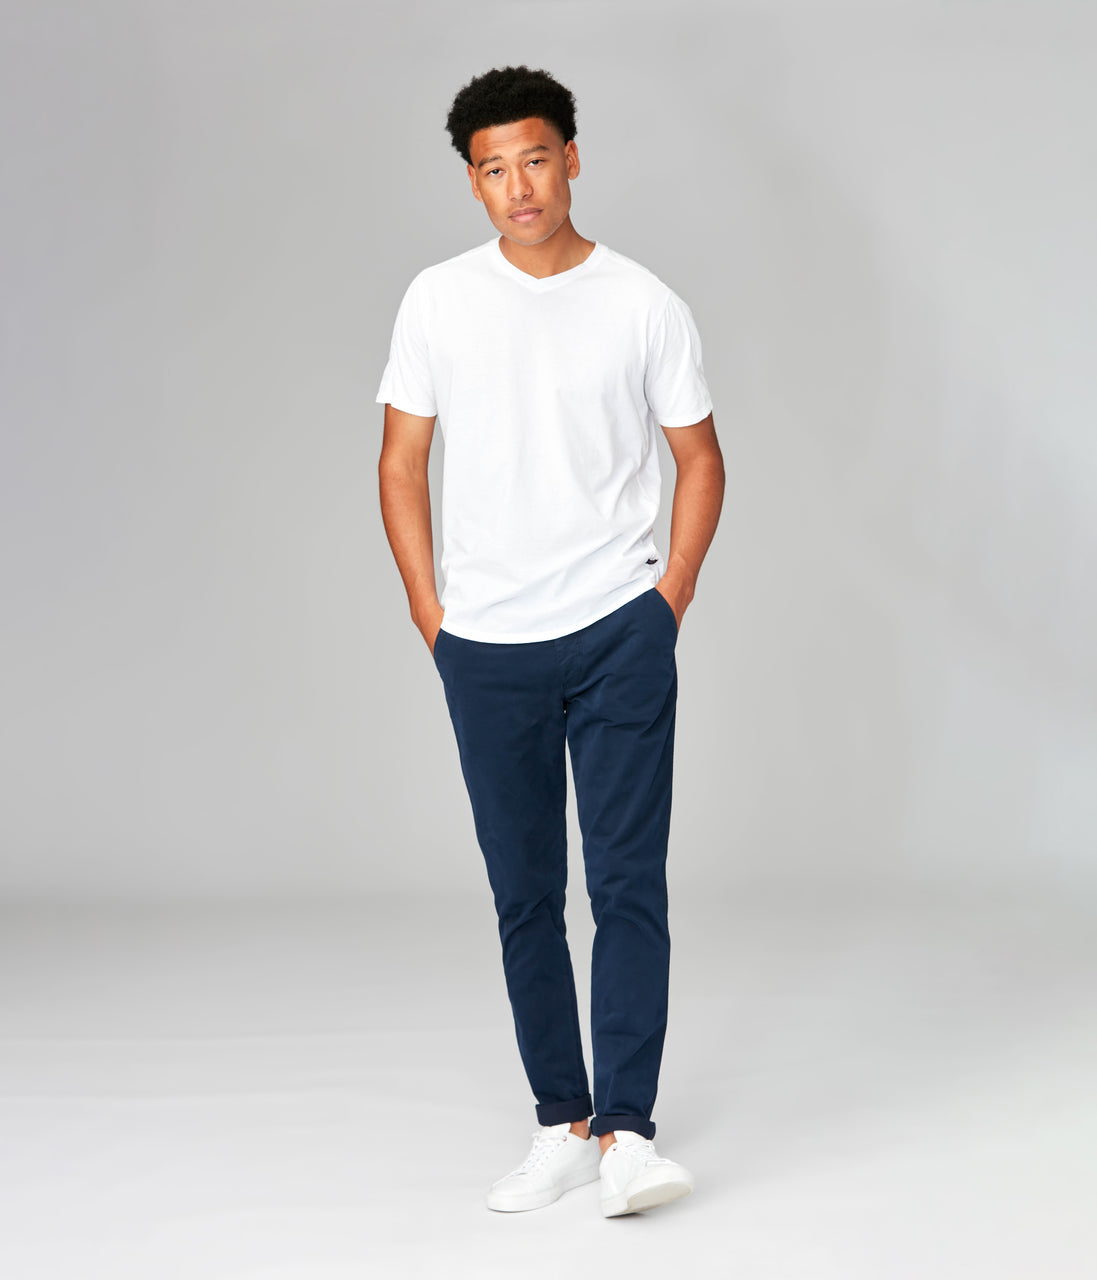 Pro Stretch Twill Star Chino - Indigo - Good Man Brand - Pro Stretch Twill Star Chino - Indigo